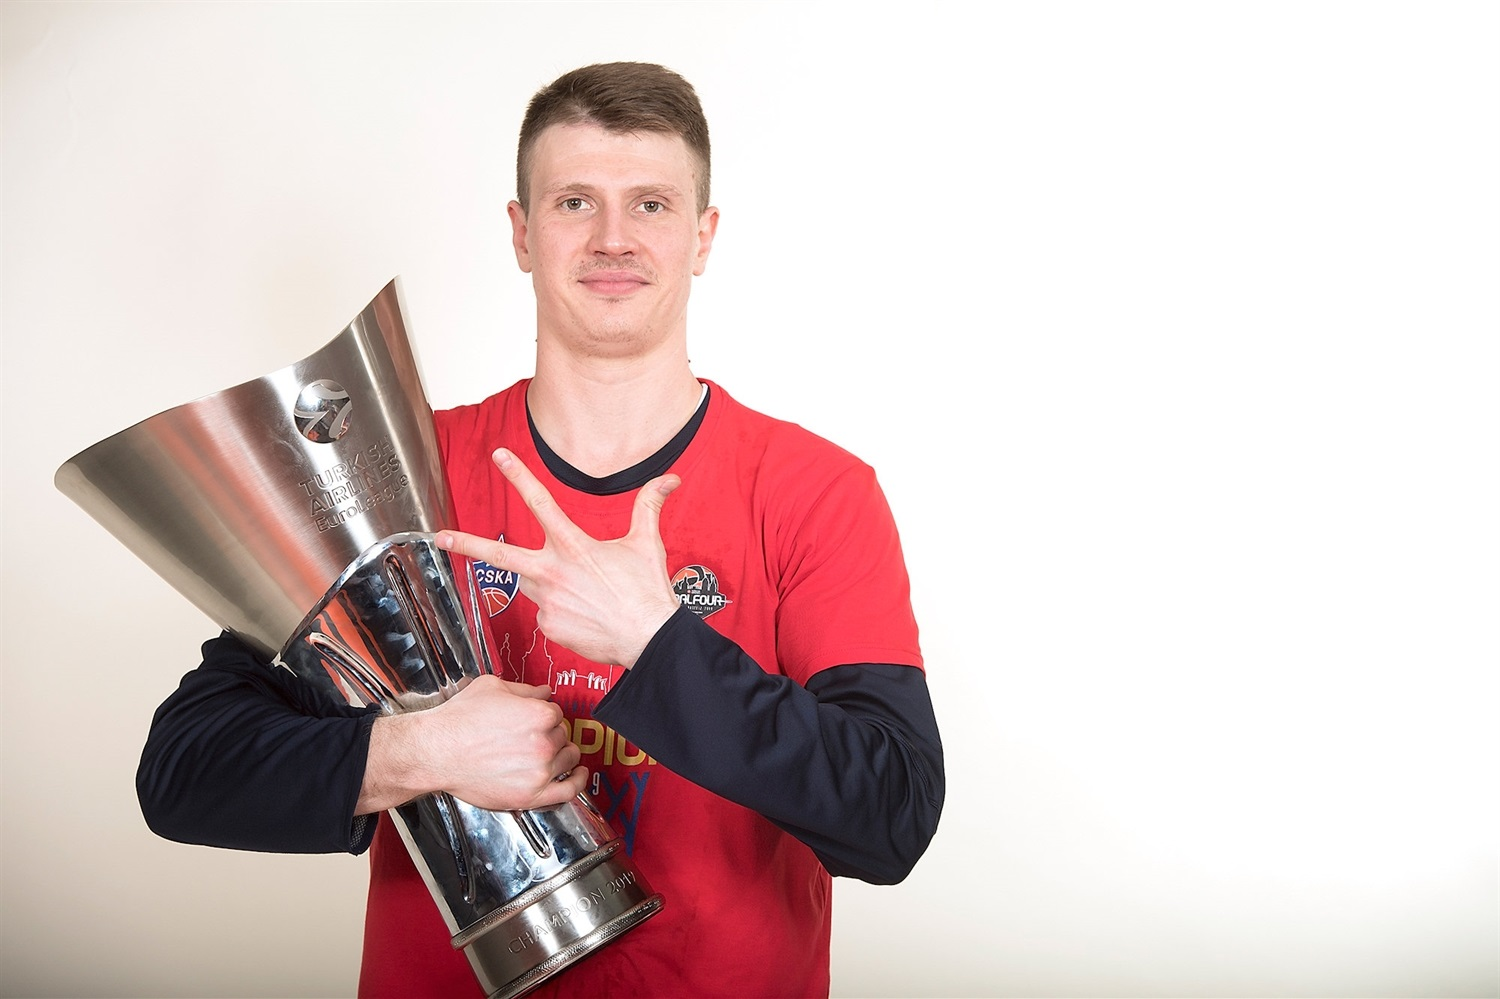 Andrey Vorontsevich - CSKA trophy photo shoot - Final Four Vitoria-Gasteiz 2019 - EB18